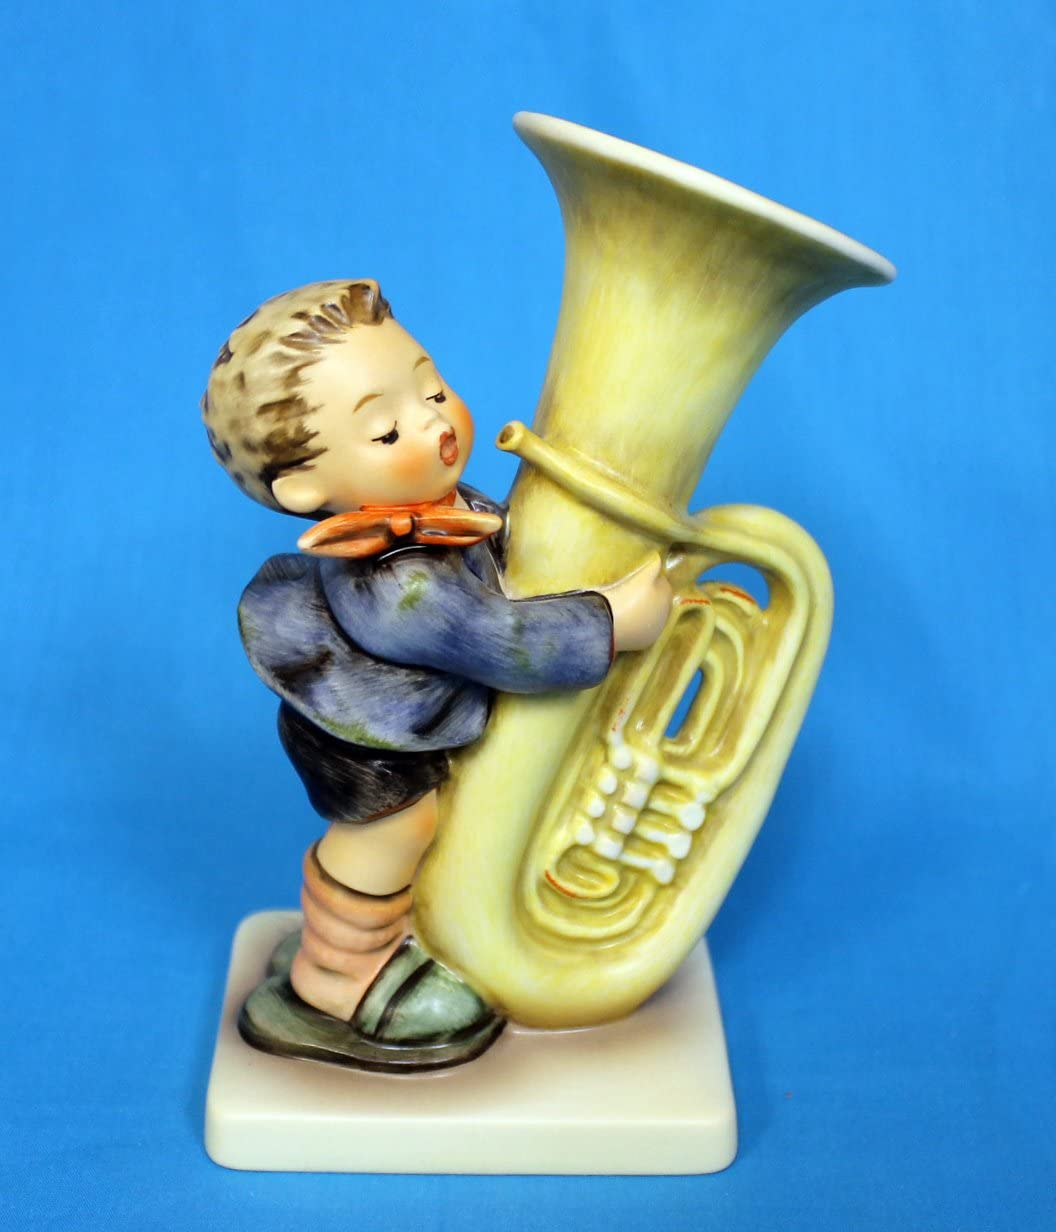 Hummel Figurine, 437 Tuba Player, 6.25 H